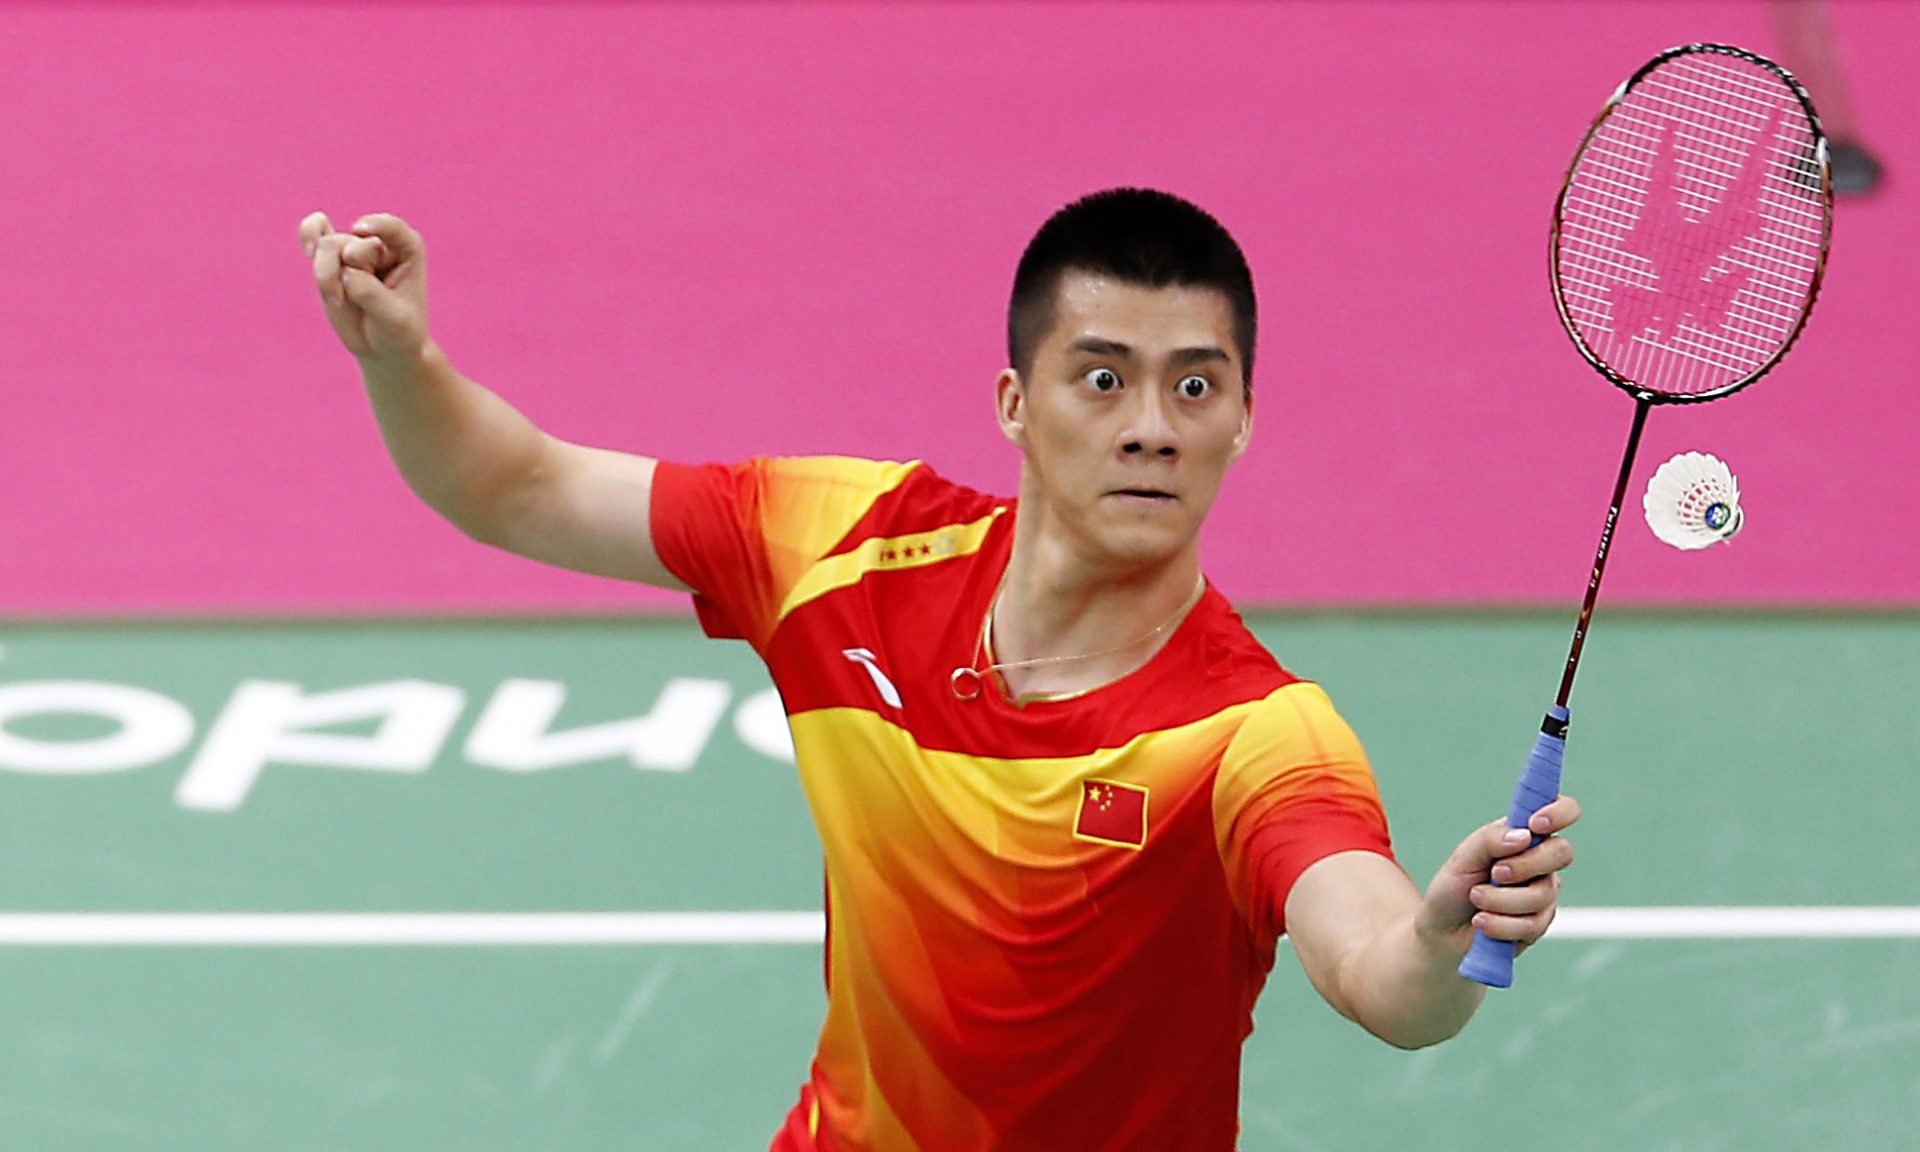 Fu Haifeng Family, Wife name,Father, Mother